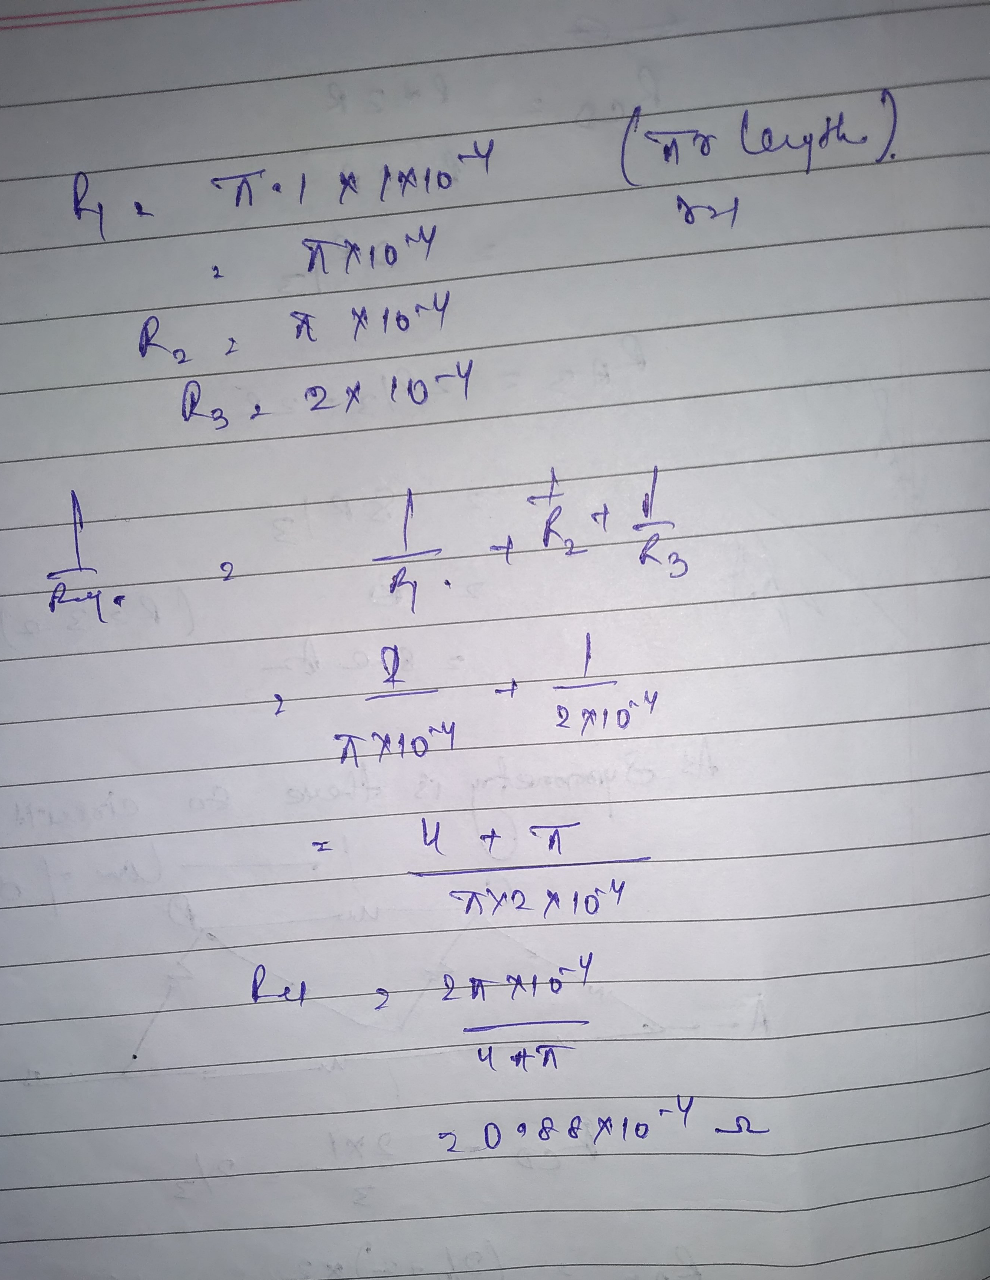 In the figure, find the resistance between points A and B.Both the circle and the diameter are made of uniform wire of resistance 1 x 10^-4 ohm per metre. The length AB is 2 meter